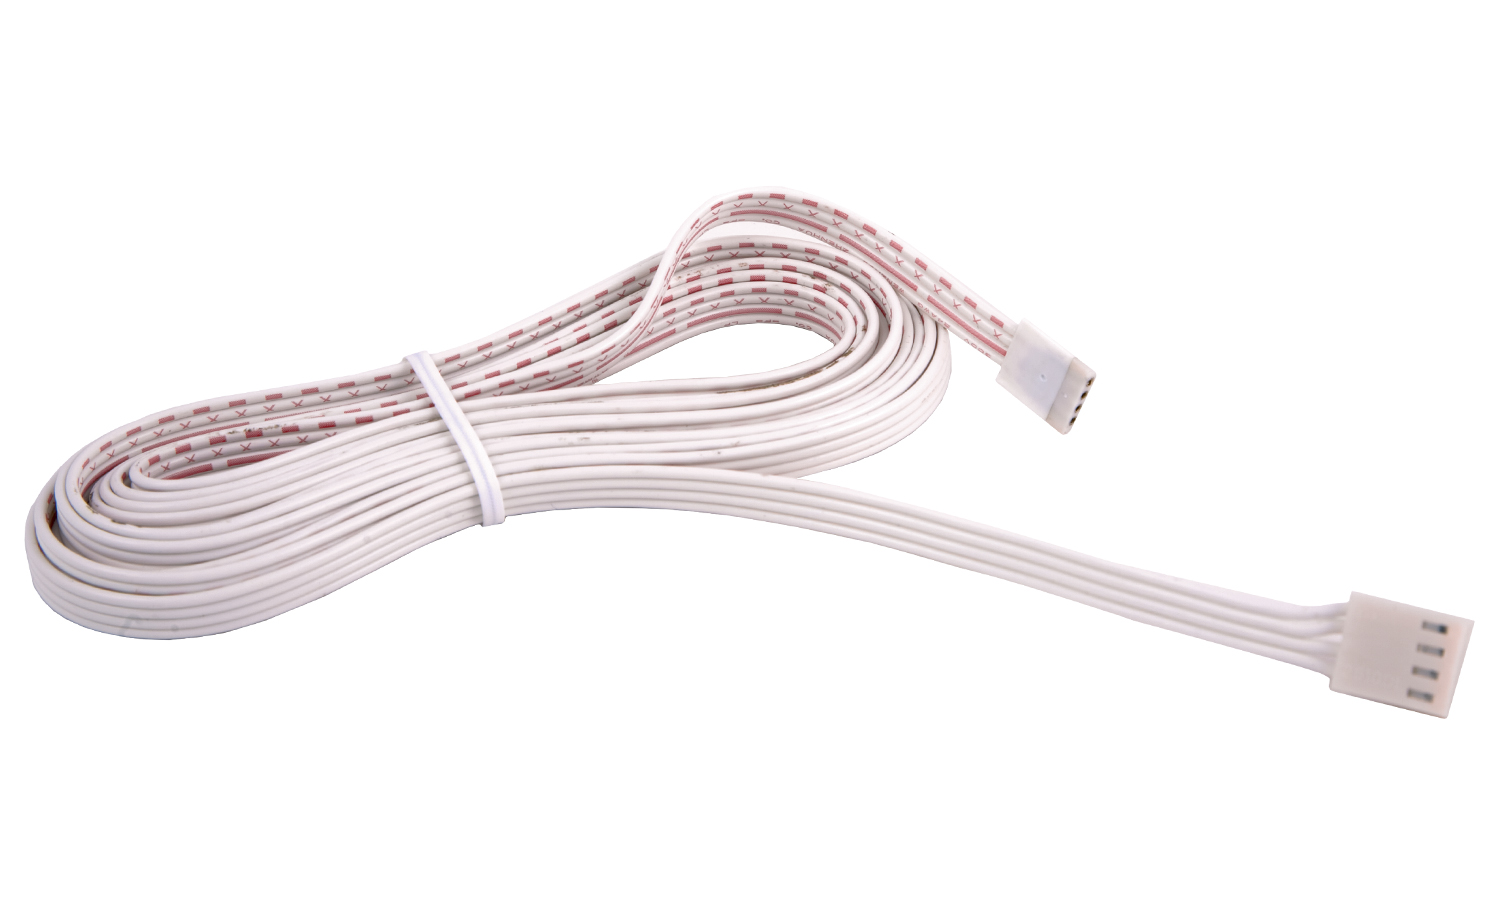 LED RGB flexible strip connector and lead, 2.5m